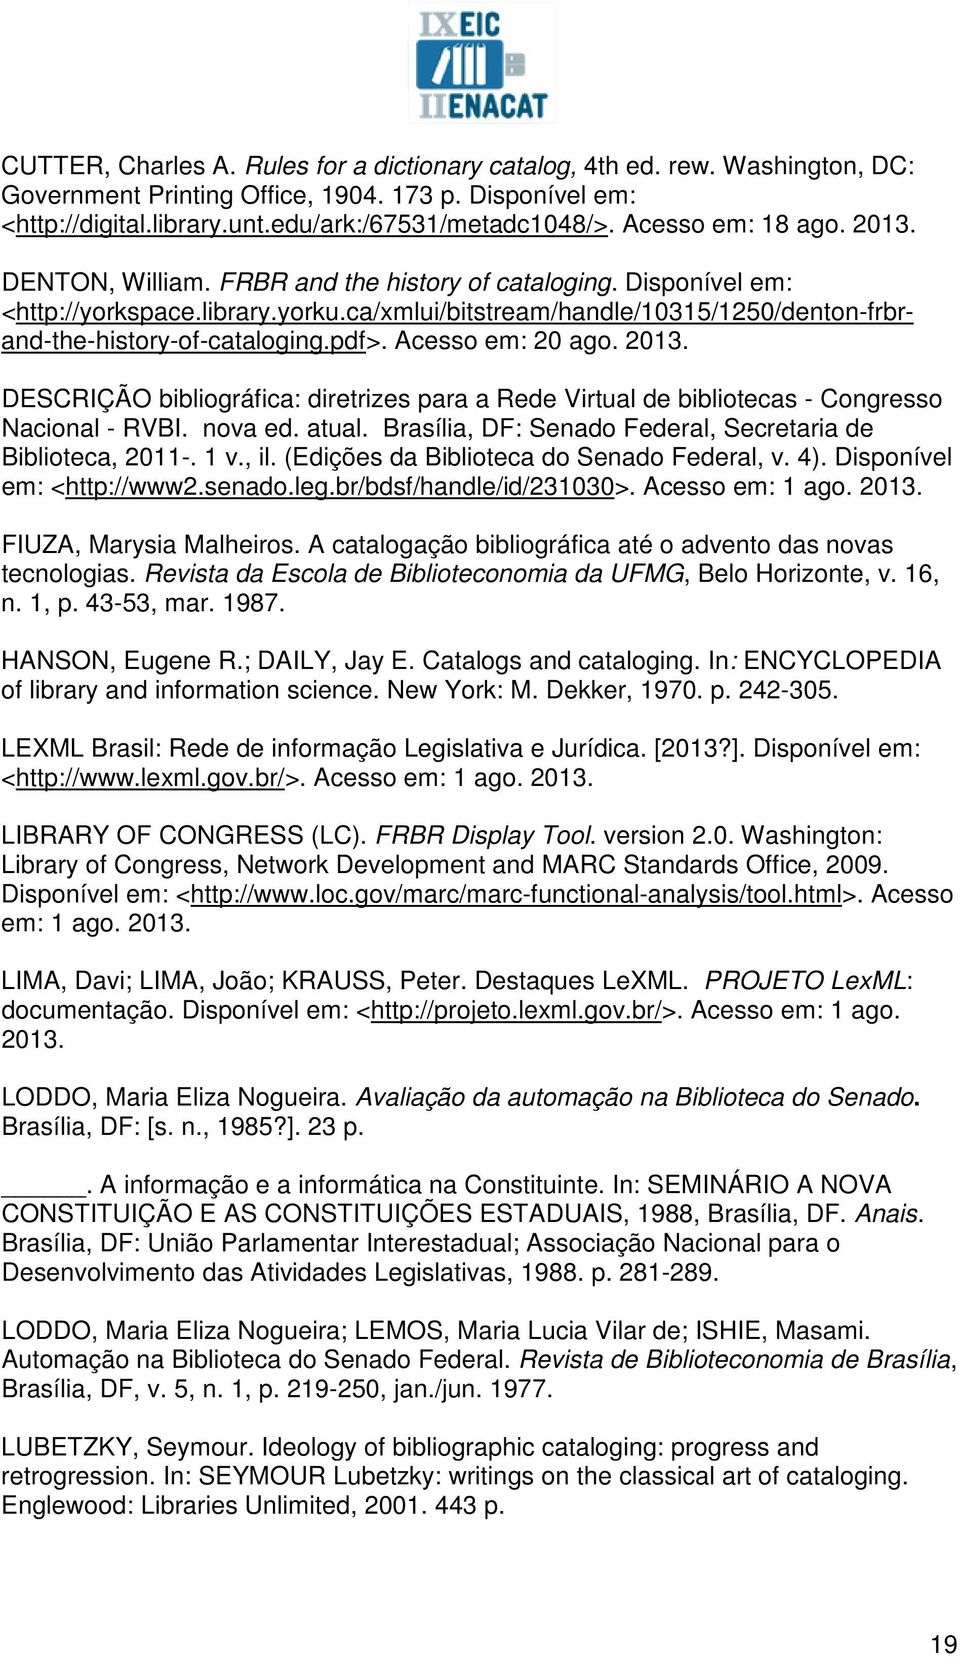 ca/xmlui/bitstream/handle/10315/1250/denton-frbrand-the-history-of-cataloging.pdf>. Acesso em: 20 ago. 2013.